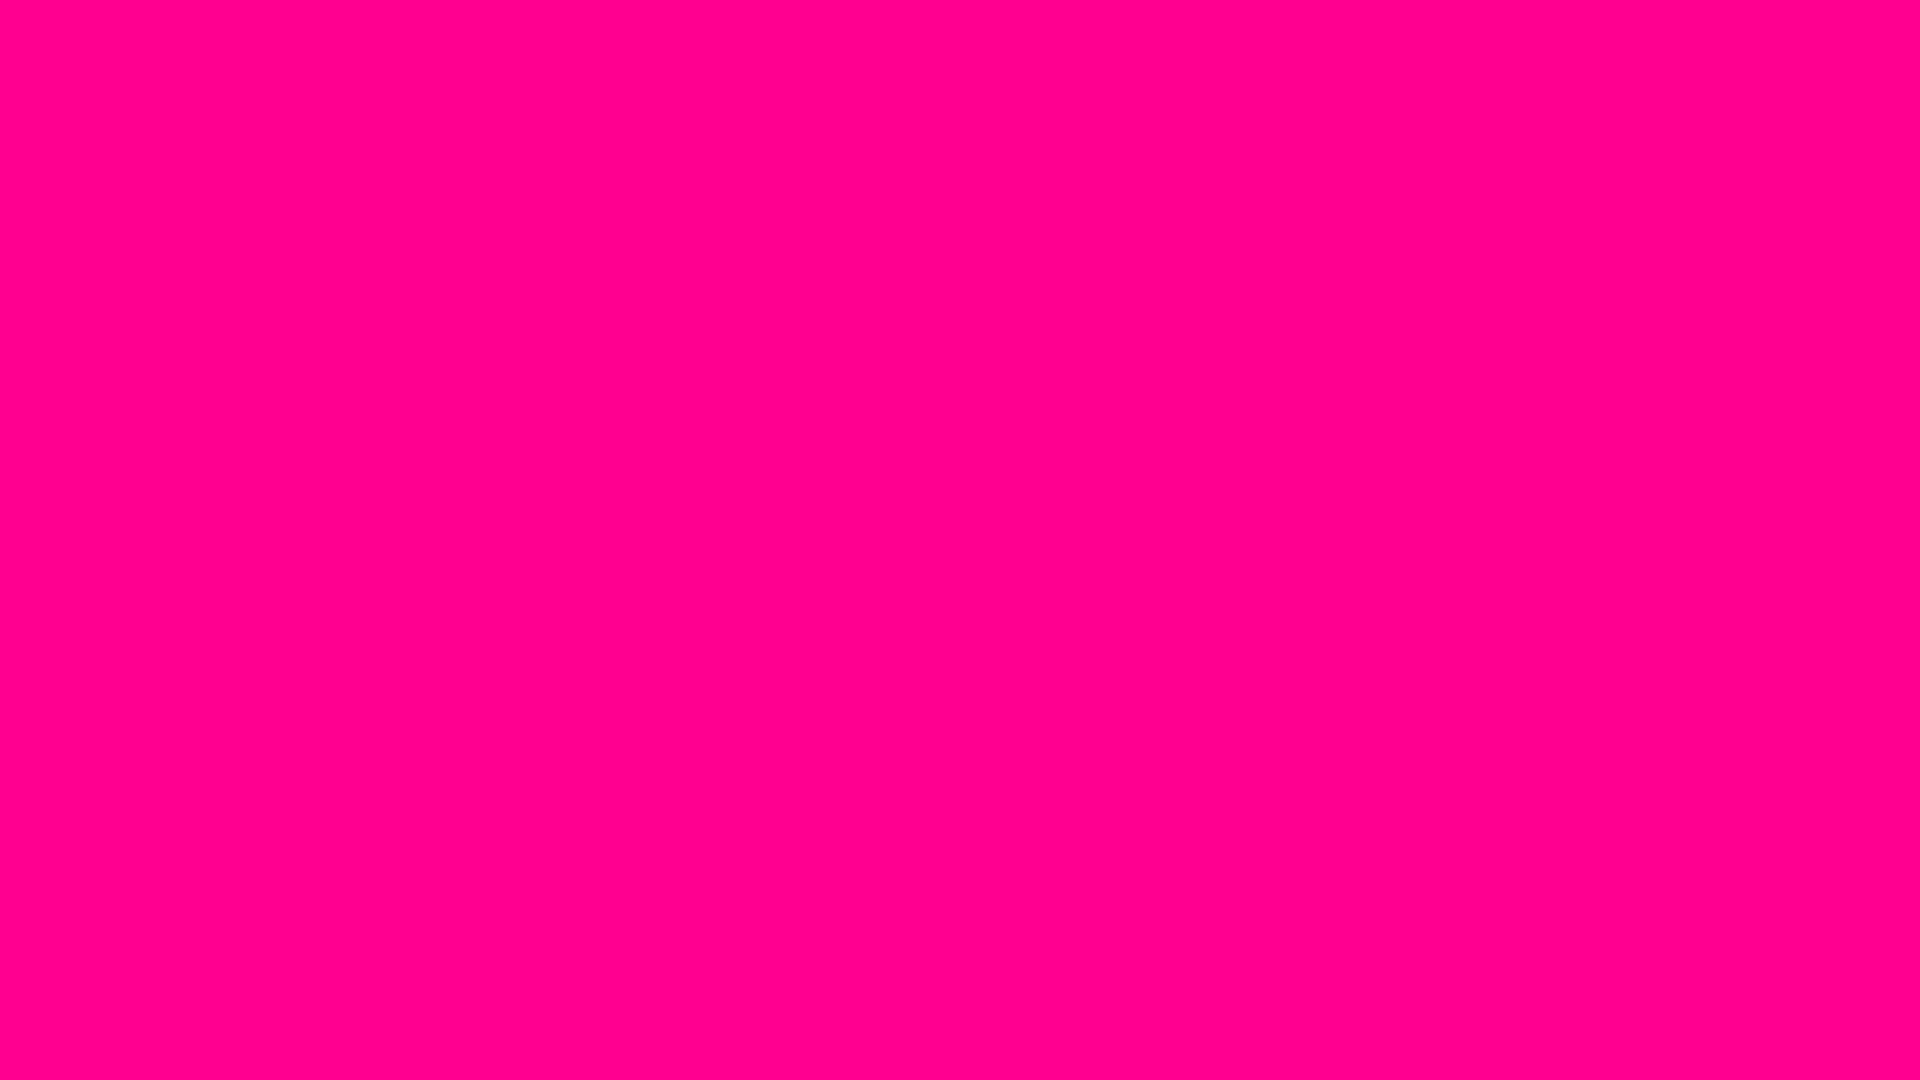 1920x1080 Magenta Process Solid Color Background